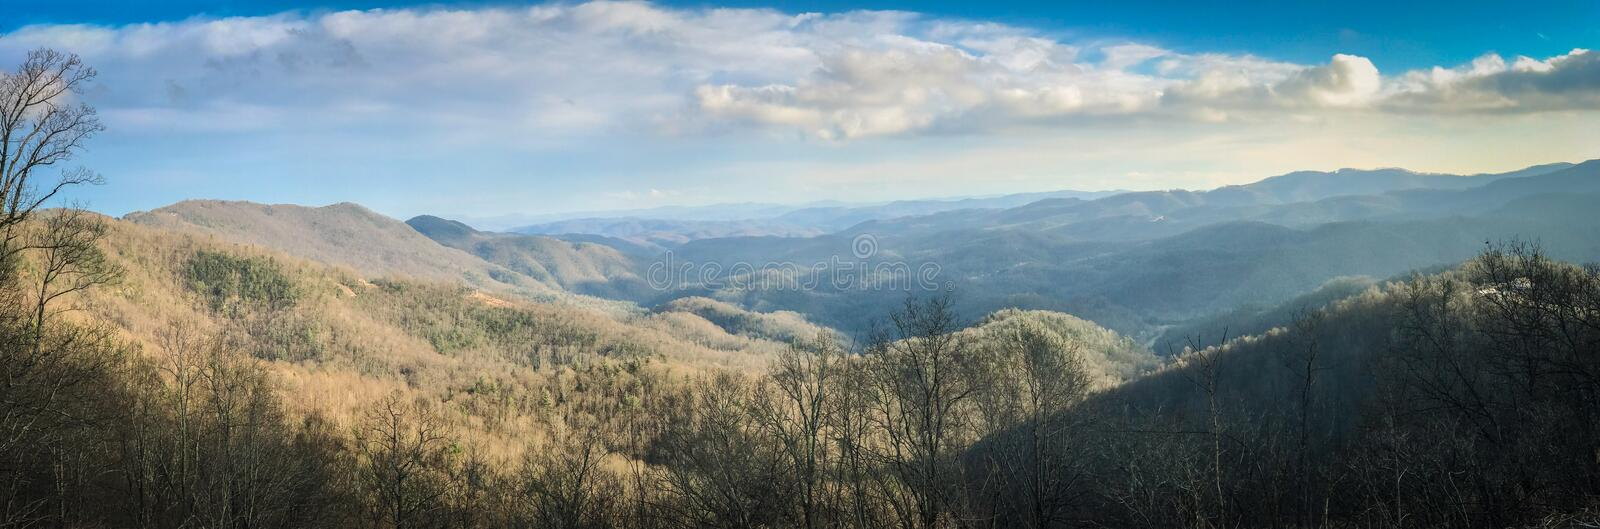 Panoramic of Grandview Overlook, Boone, North Carolina. The Grandview Overlook located in Boone, North Carolina standing 3240 feet above sea level royalty free stock photo